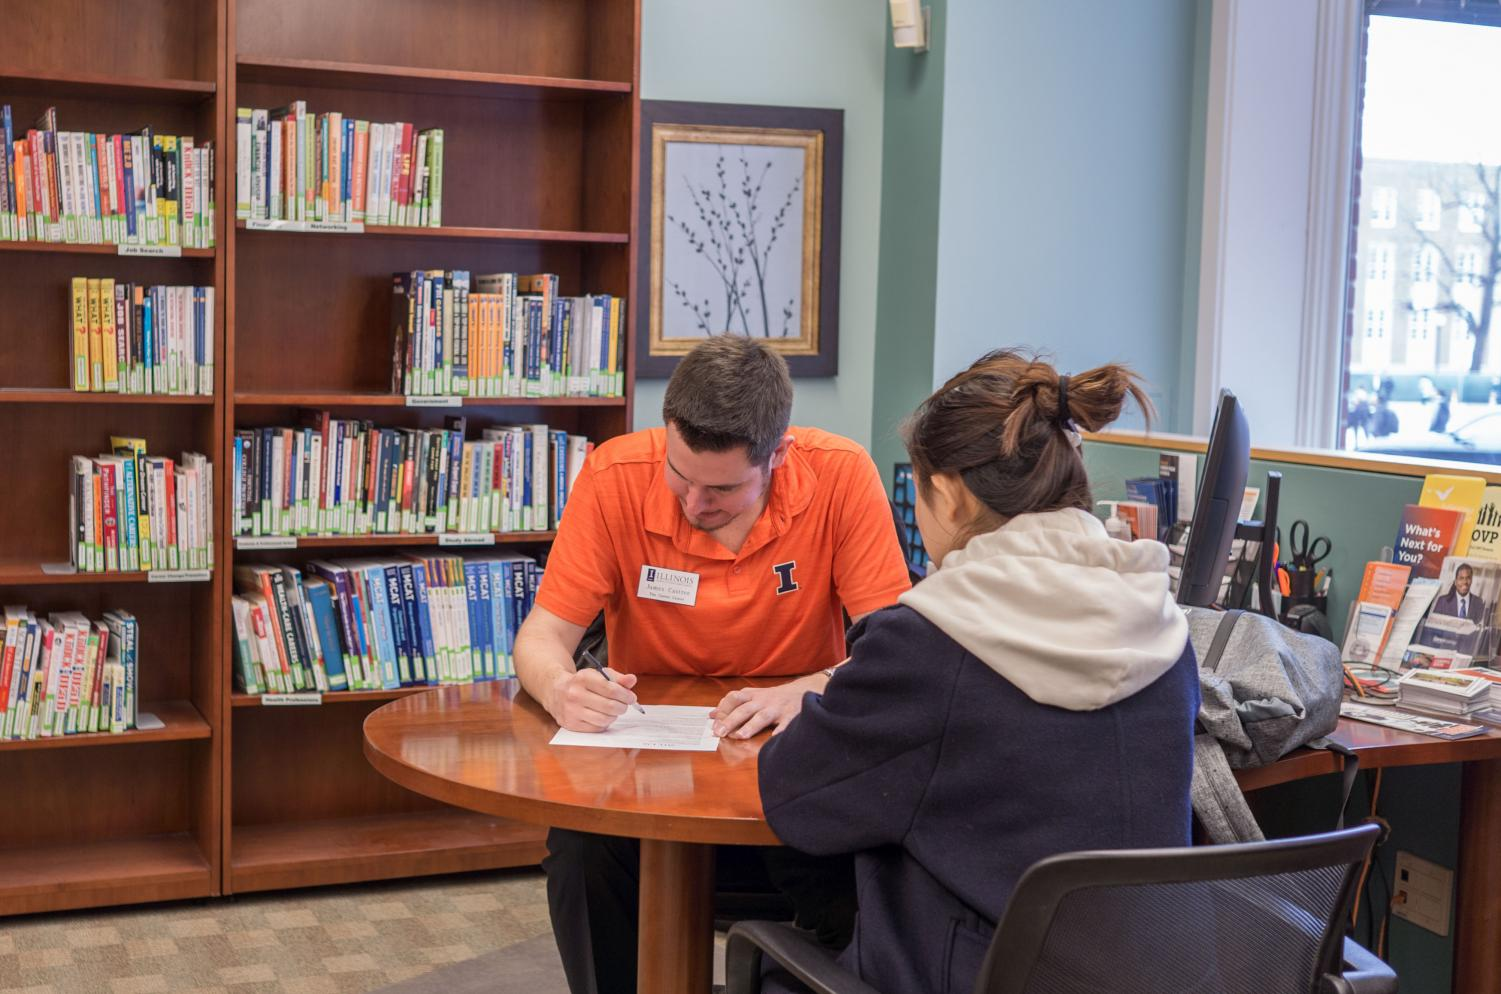 A student meets with James Castree, graduate assistant for career planning and campus outreach for the Career Center. The Career Center has several advisers that can offer guidance to picking a major or applying to graduate school.